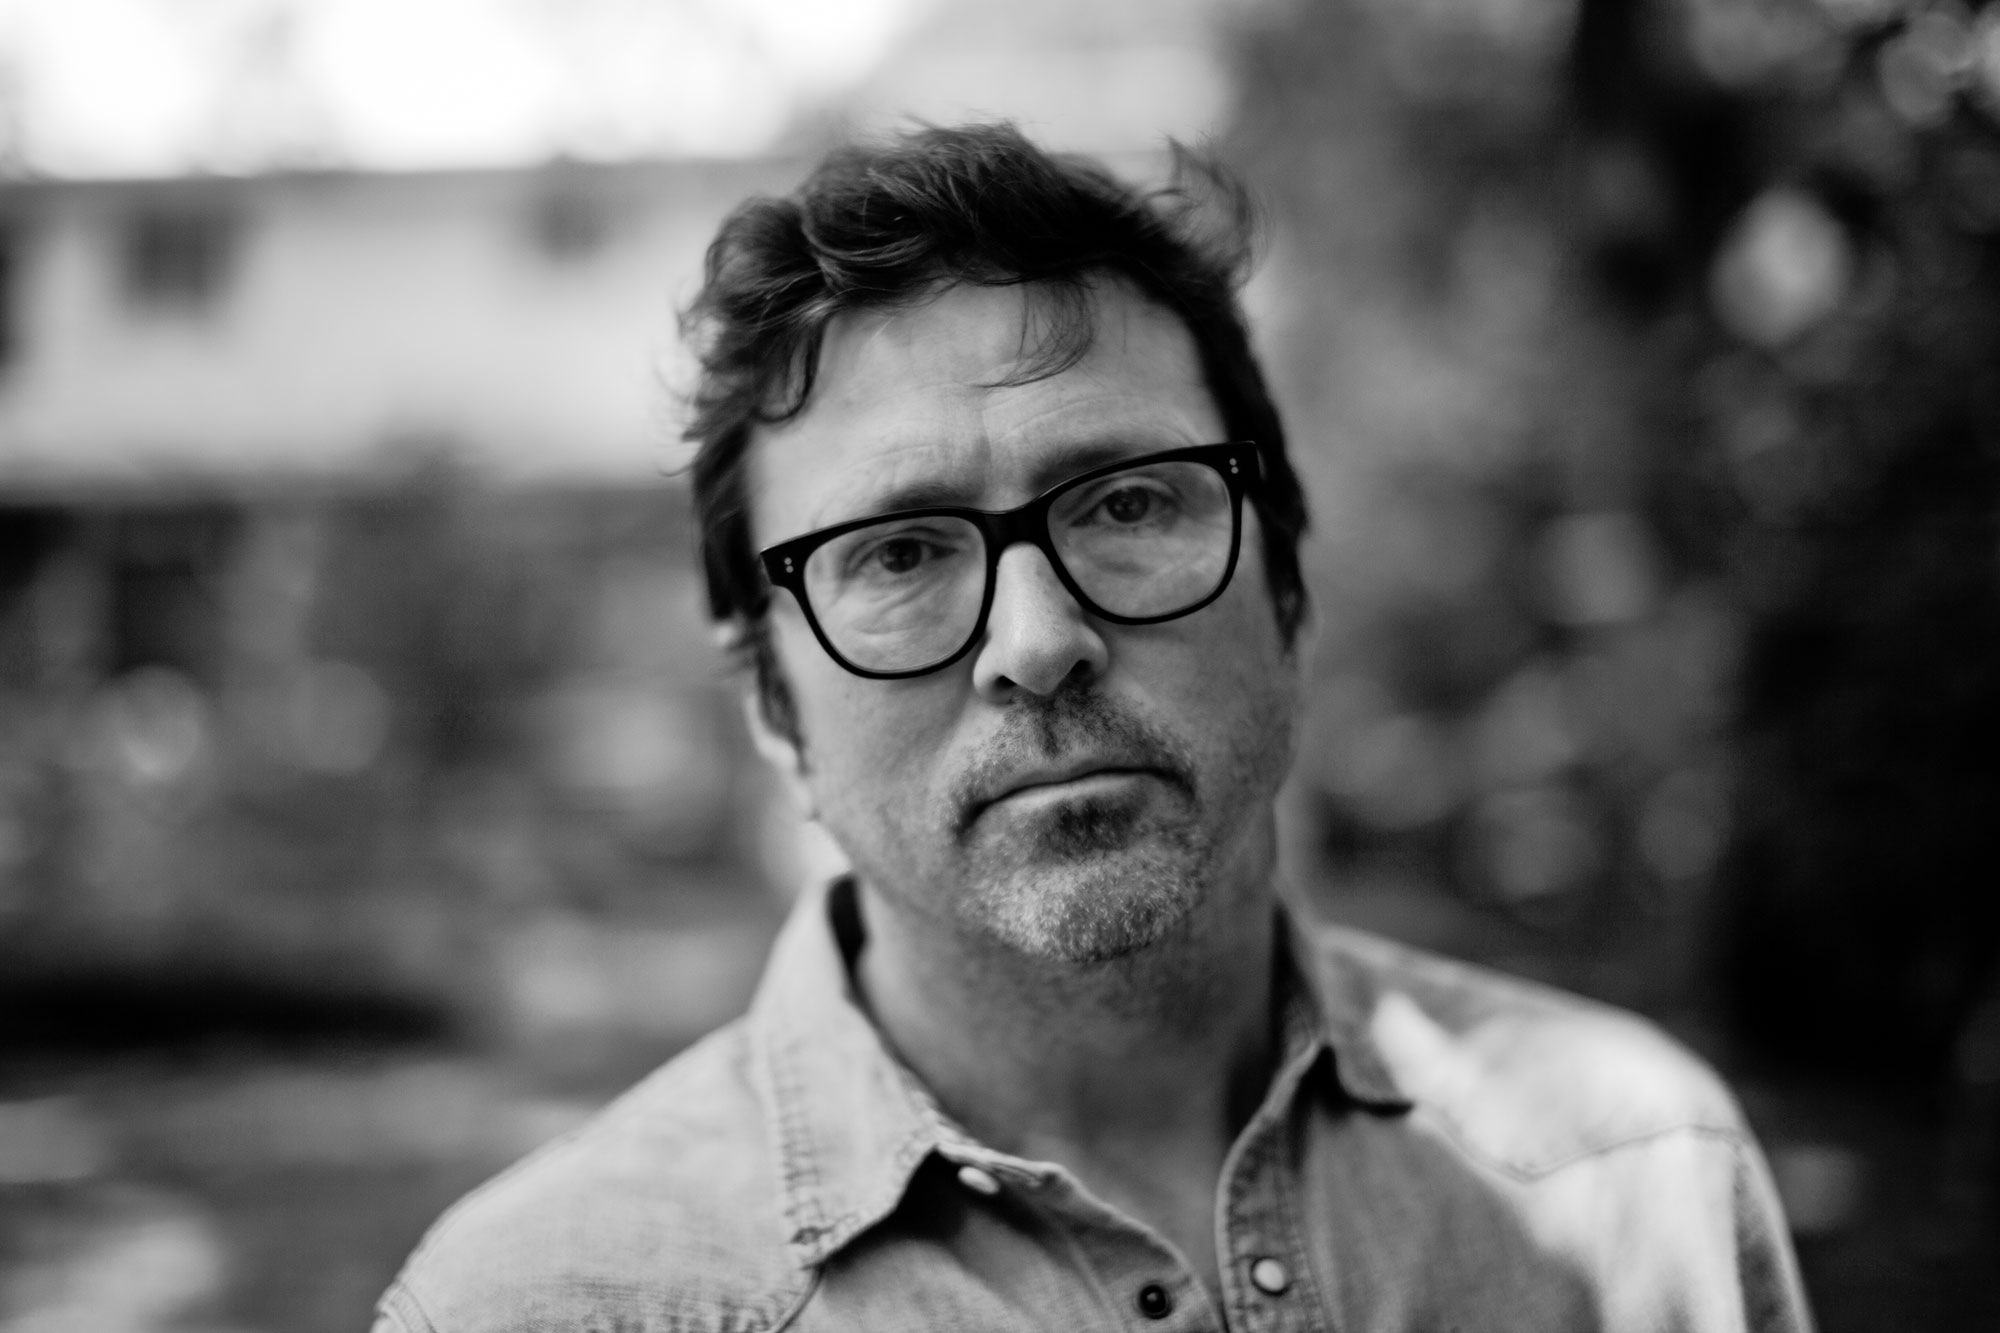 Will Kimbrough Previews New Album With 'Alabama (For Michael Donald)' and 'Hey Trouble'